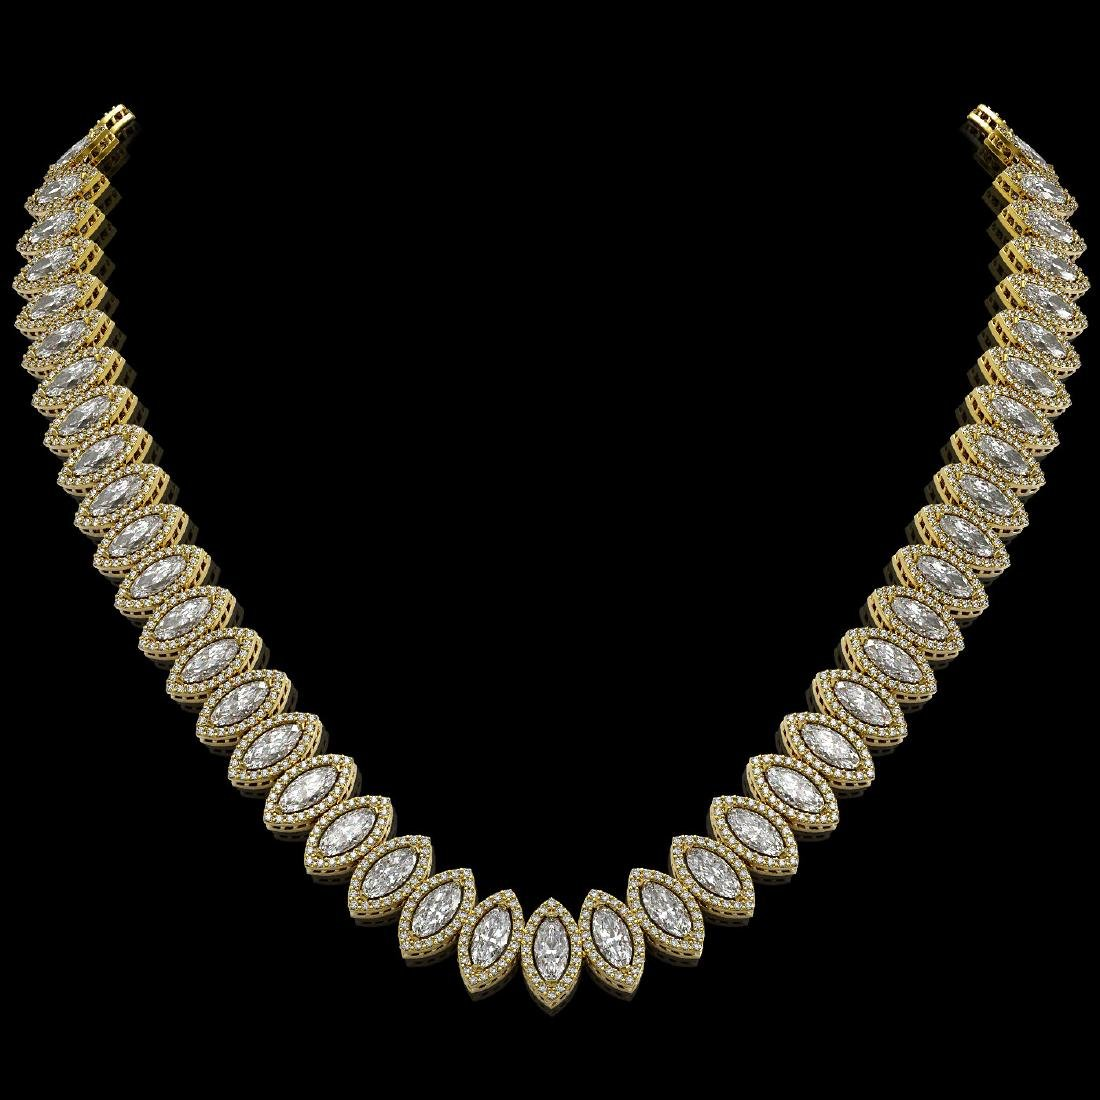 39.68 CTW Marquise Diamond Designer Necklace 18K Yellow